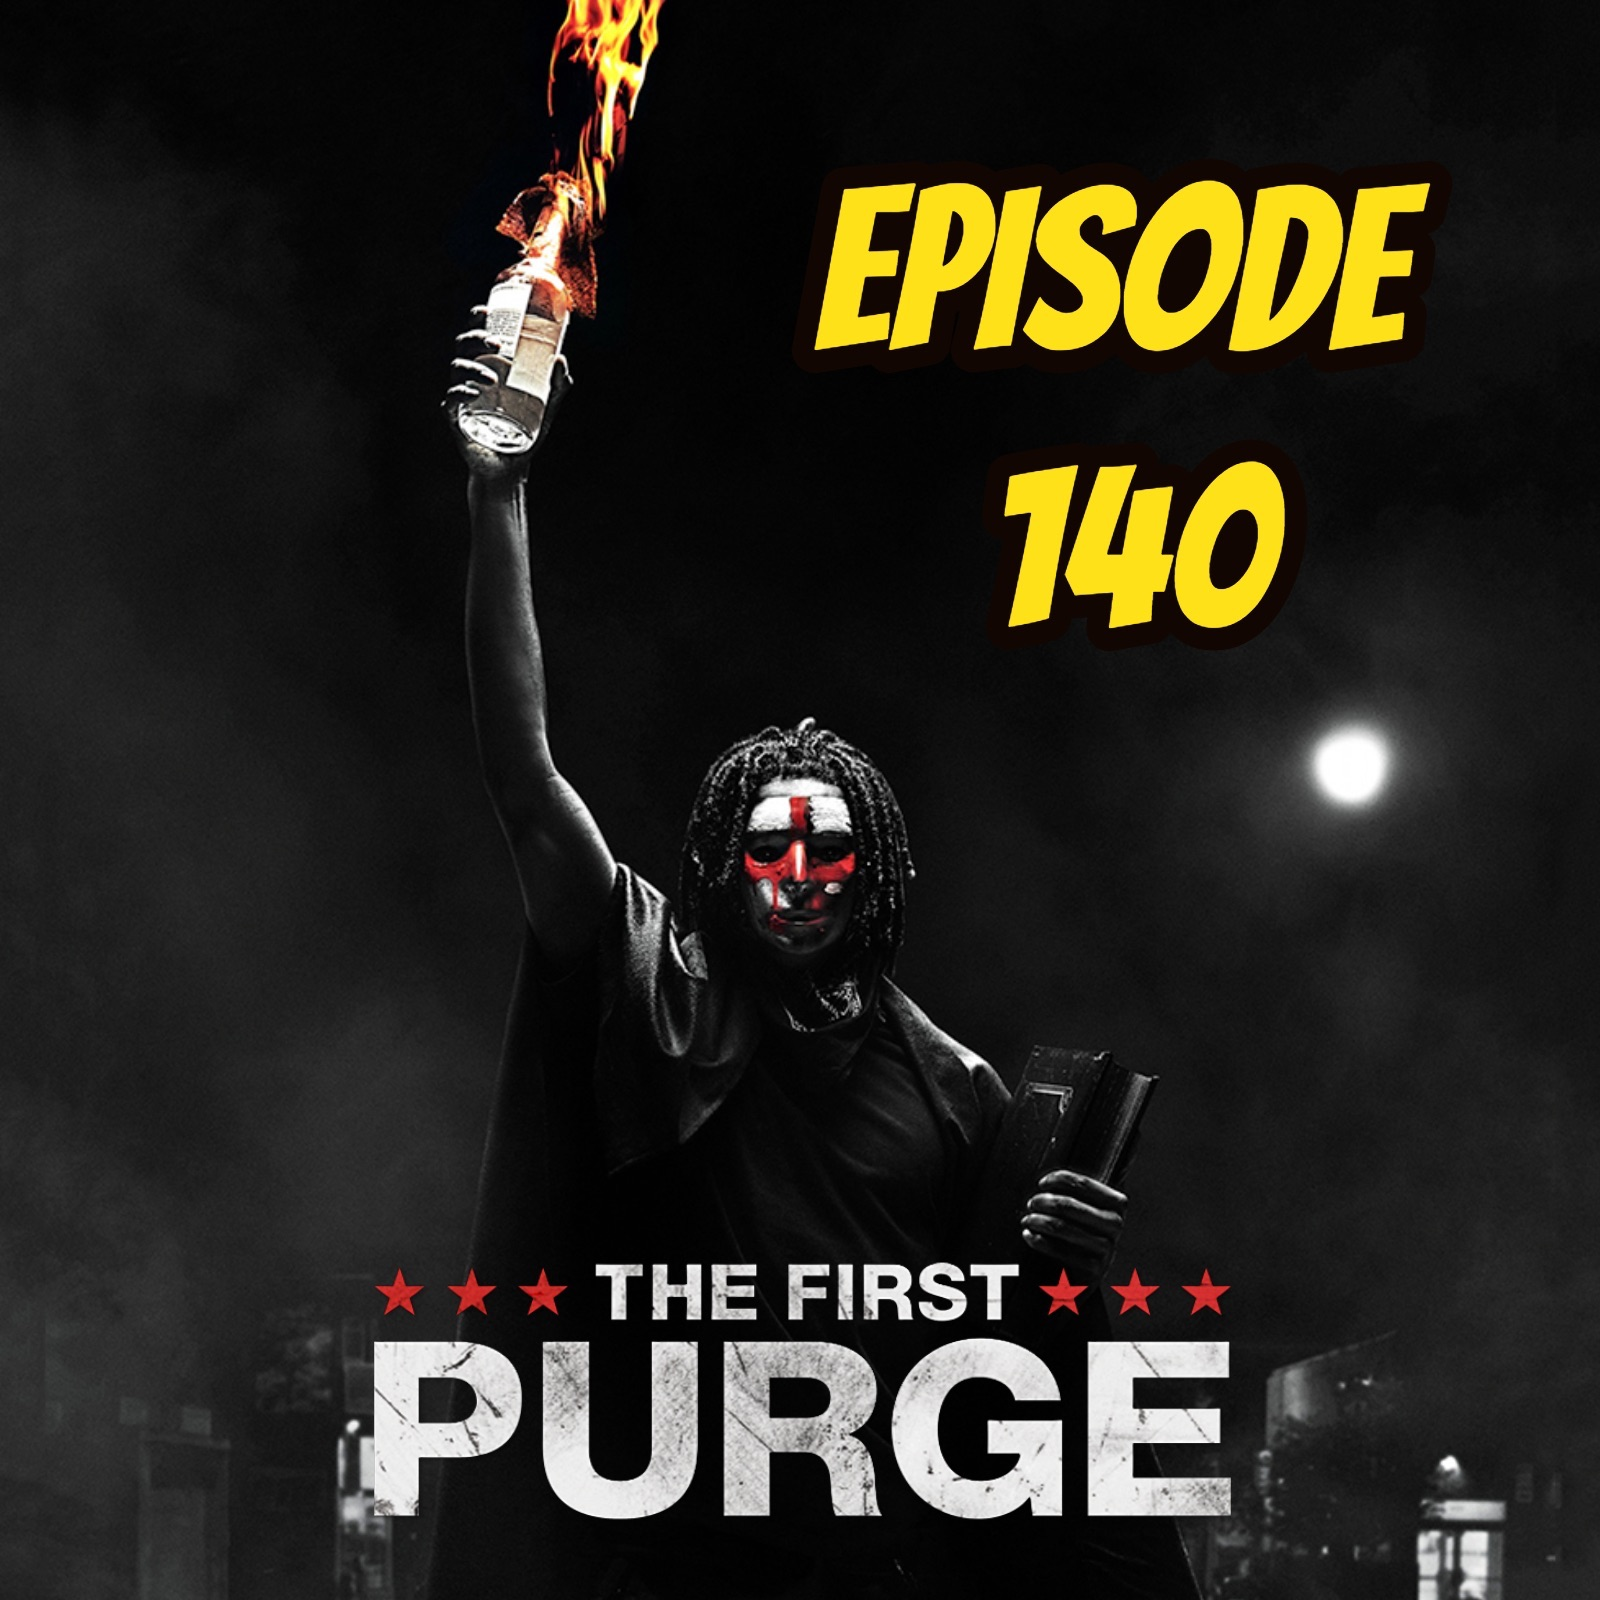 The First Purge - Episode 140